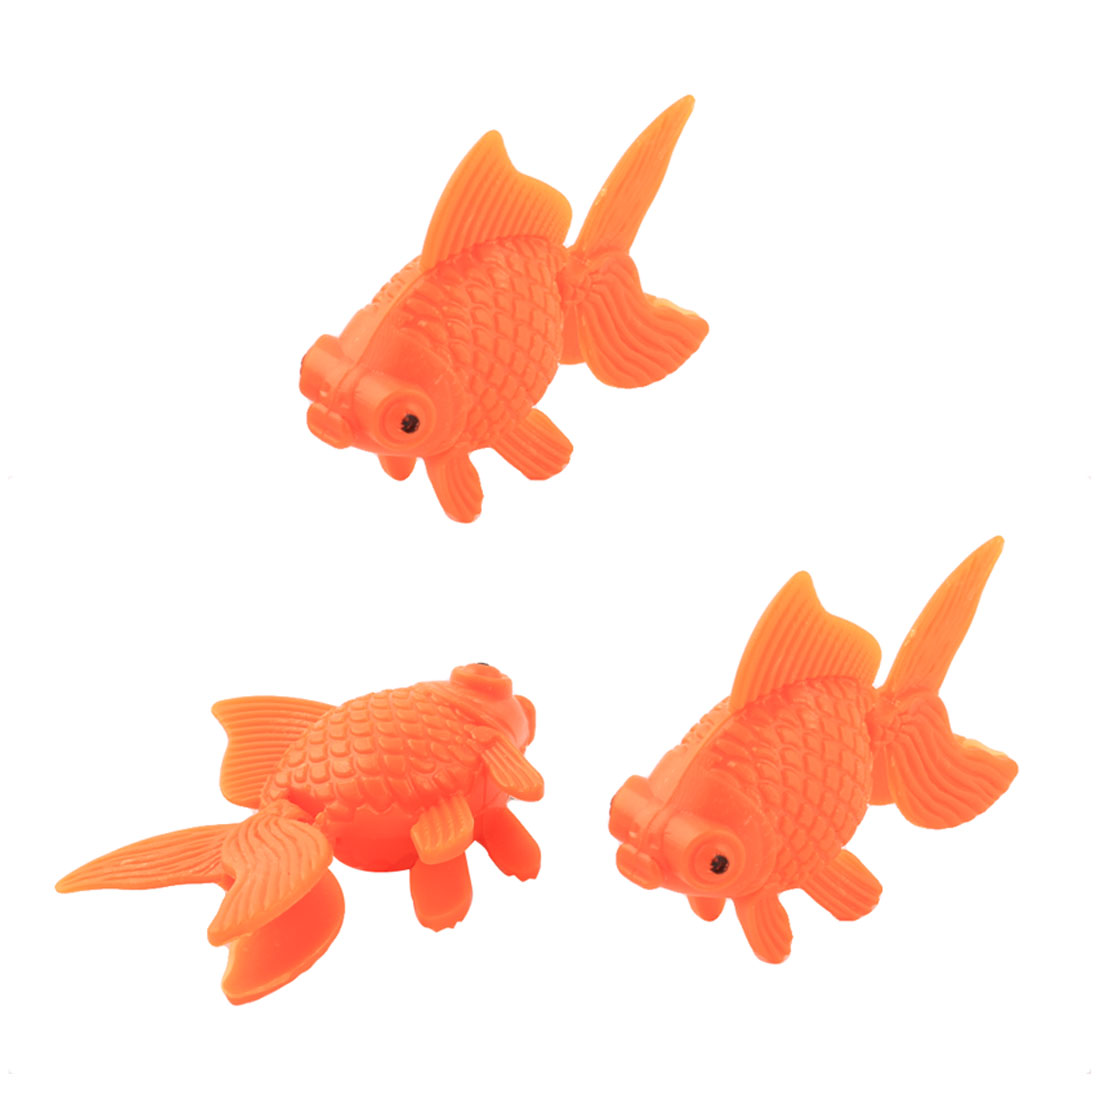 Aquarium Fish Bowl Tank Plastic Decor Goldfish Ornament Orange 3pcs